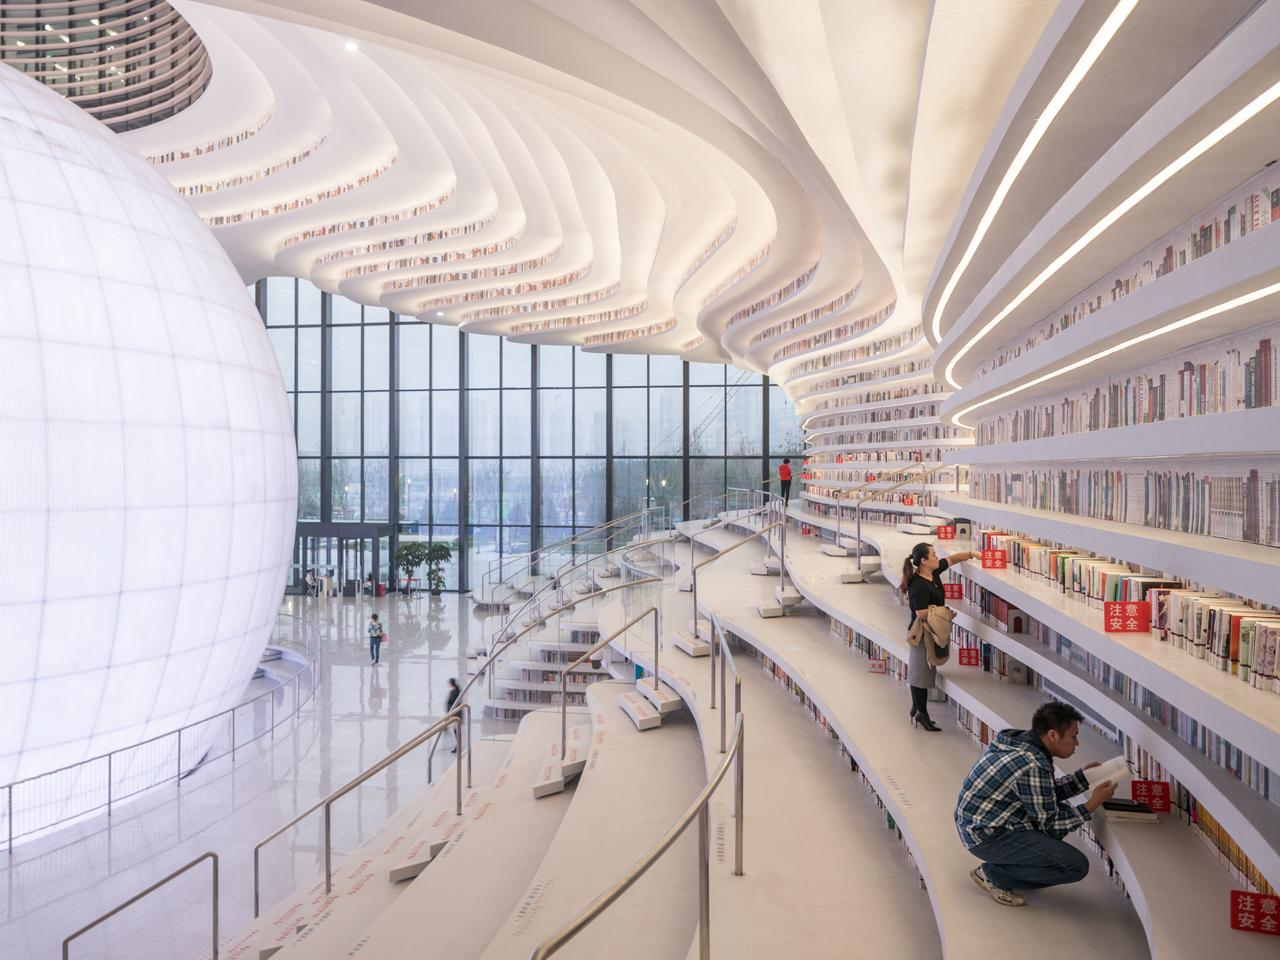 Floor-to-ceiling bookcases cascade organically around the auditorium, forming the building's main spatial device / Ossip van Duivenbode